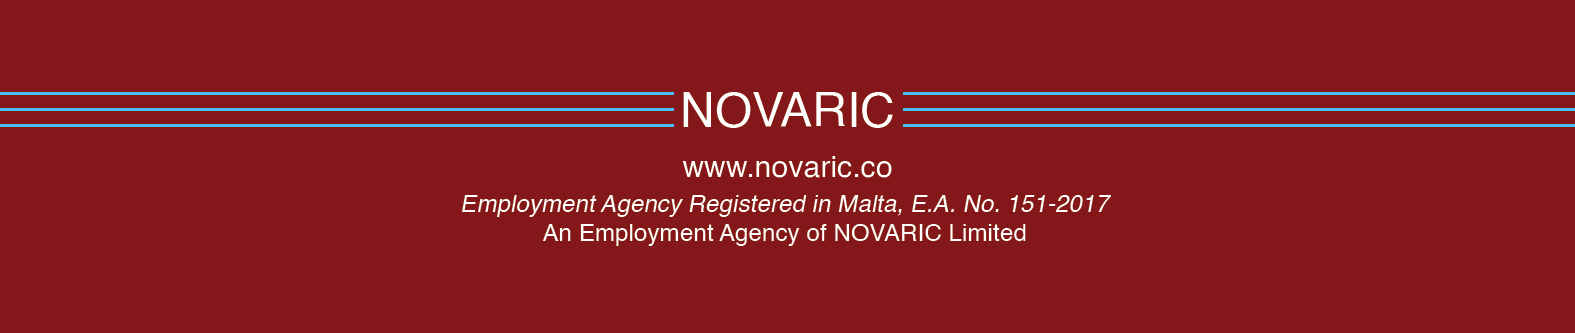 NOVARIC_Footer-Recruitment-Agency